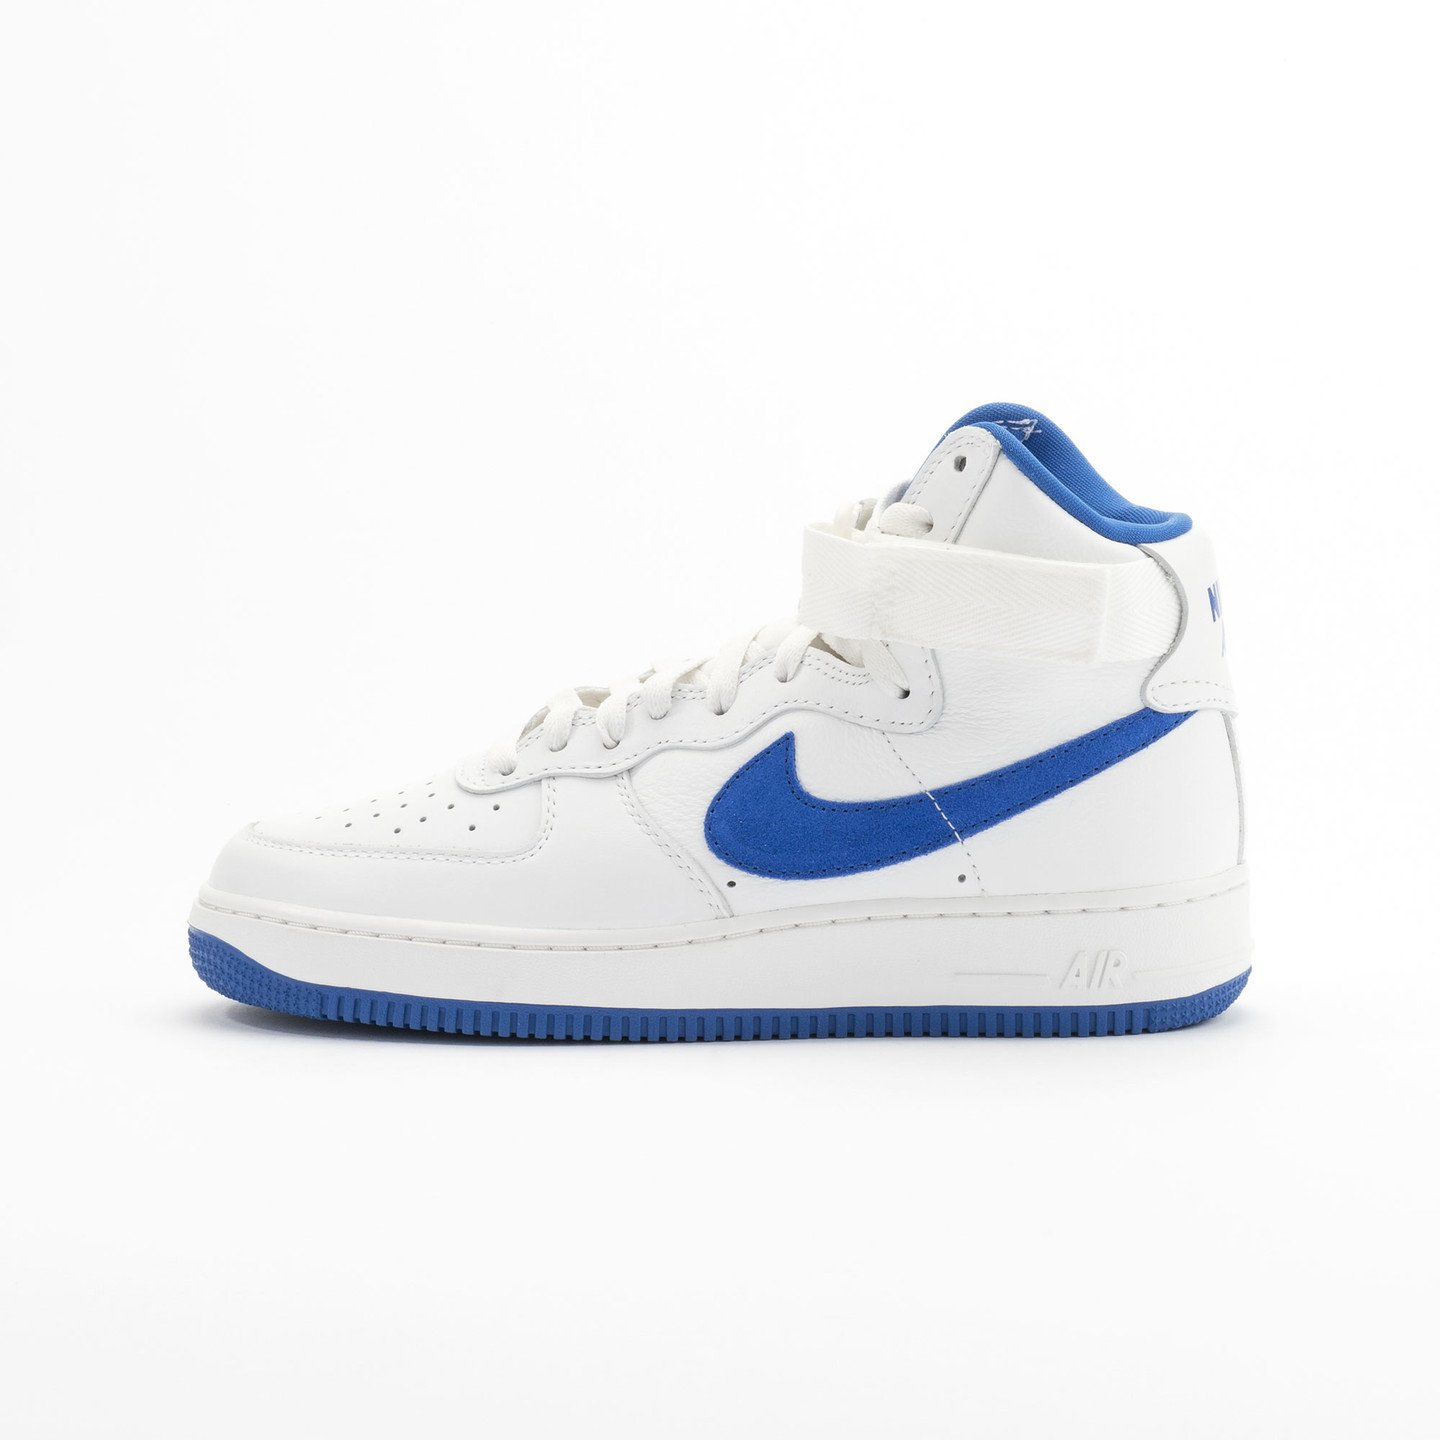 Nike Air Force 1 Hi Retro OG QS Summit White - Game Royal 743546-103-40